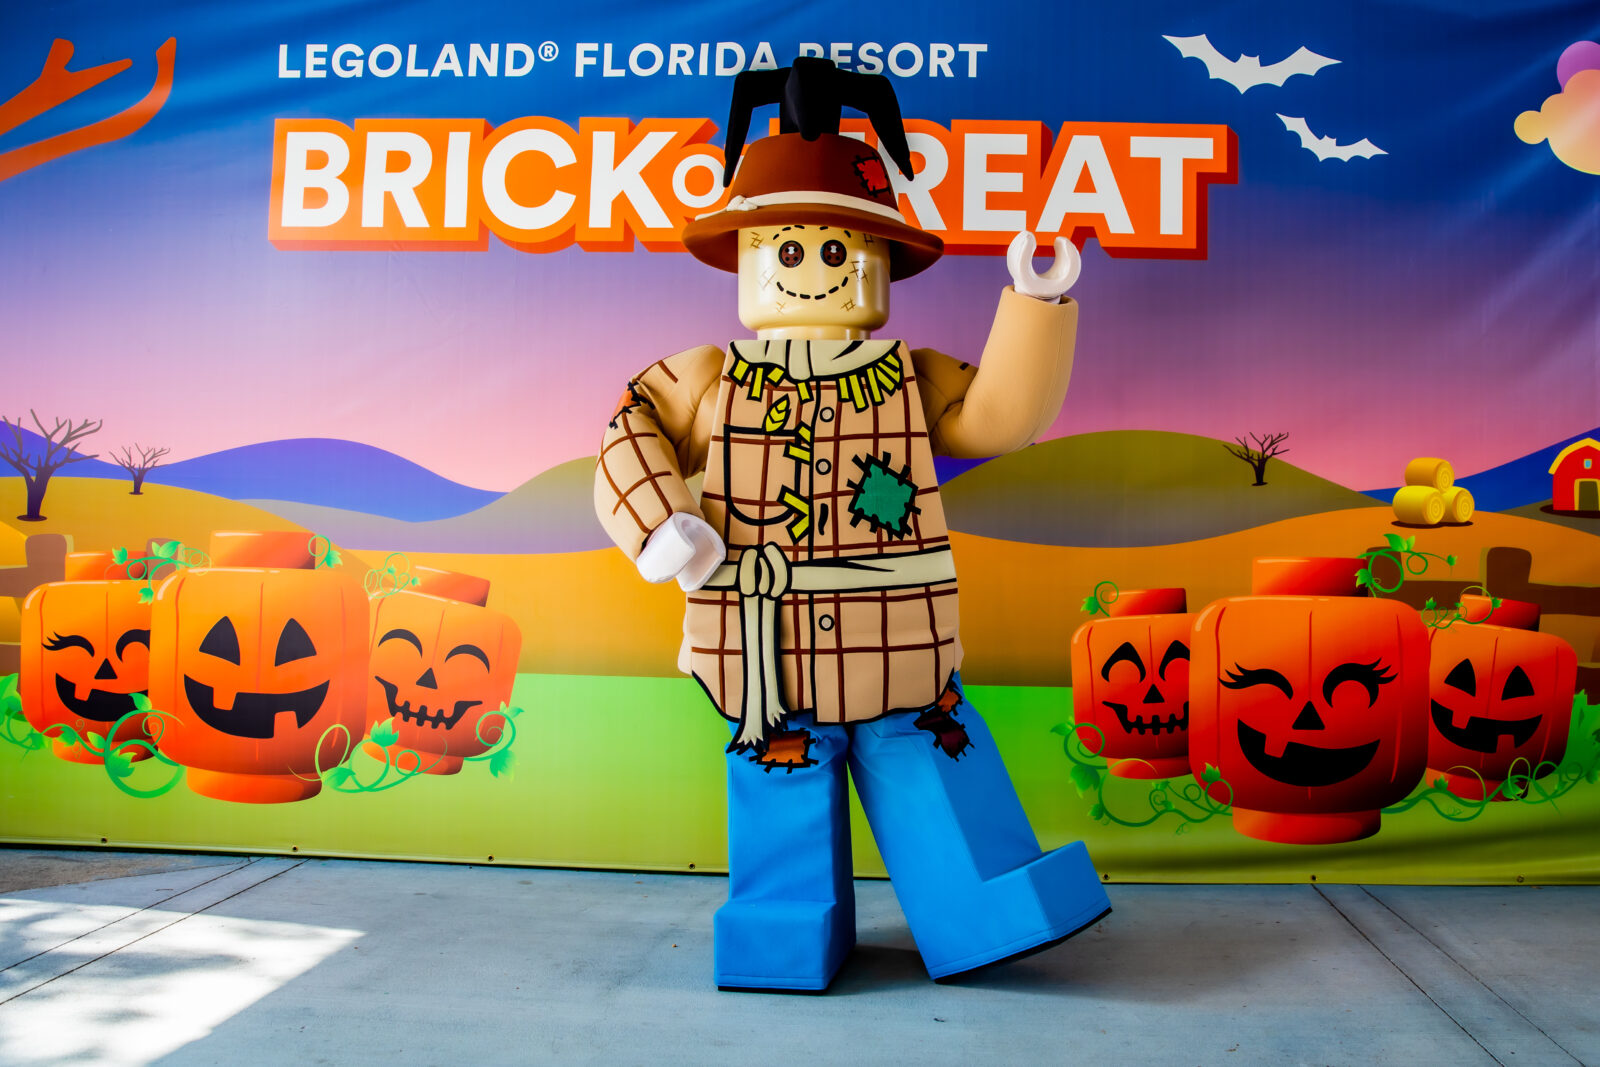 LEGOLAND Florida Brick or Treat Halloween 2020 on the go in the parks